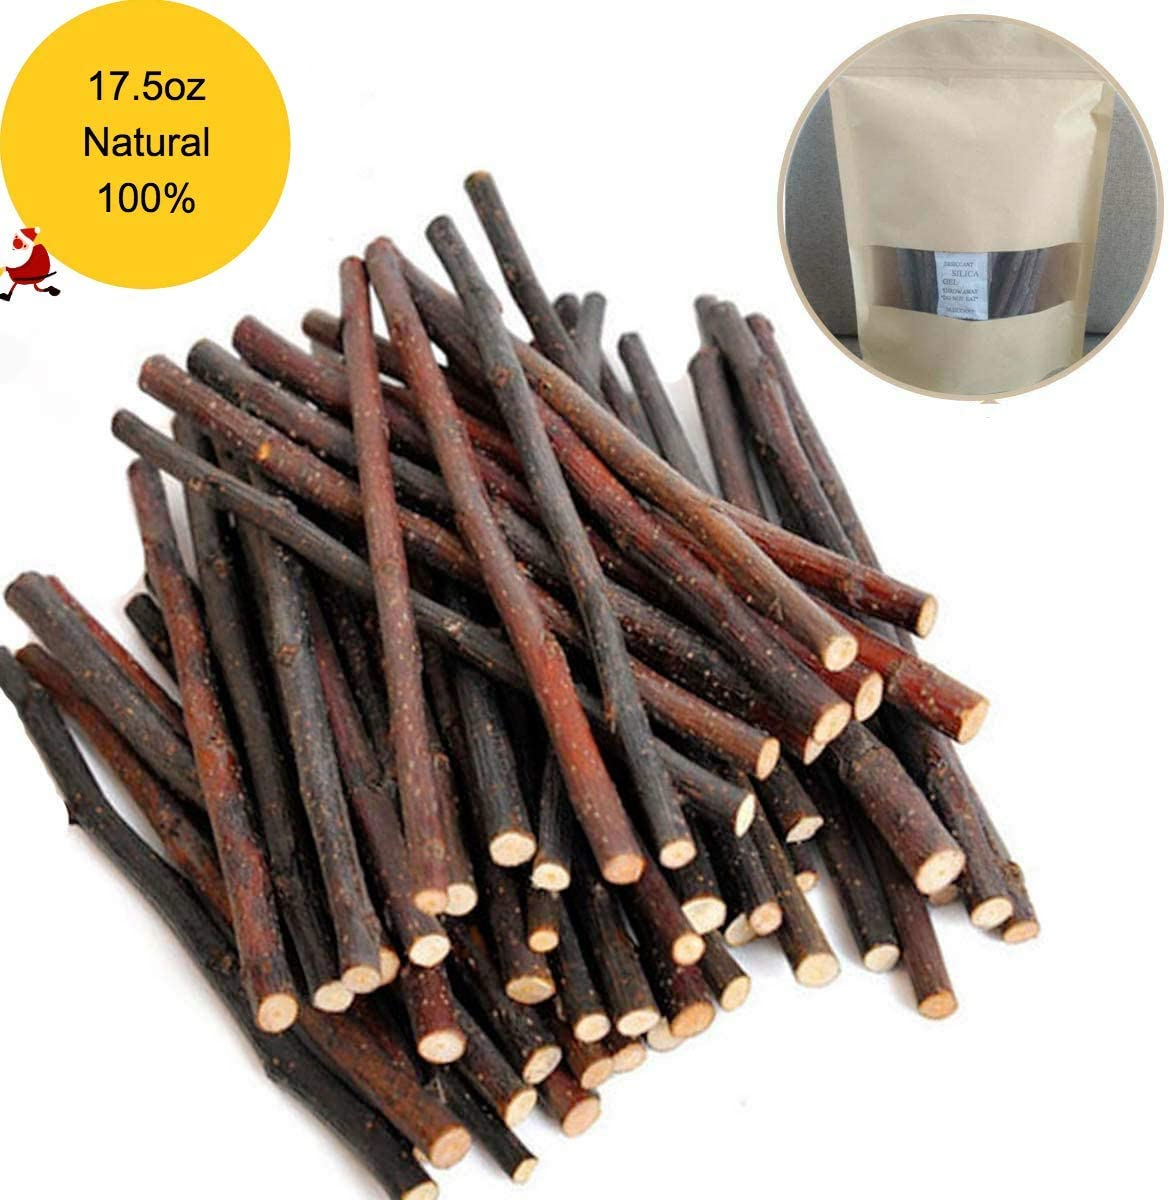 KaiChuangTong 200g Natural Apple Sticks Small Animals Molar Wood Treats Toys Chinchilla Guinea Pig Hamster Rabbit Gerbil Parrot Bunny and Small Animals Chew Stick Toys Treats